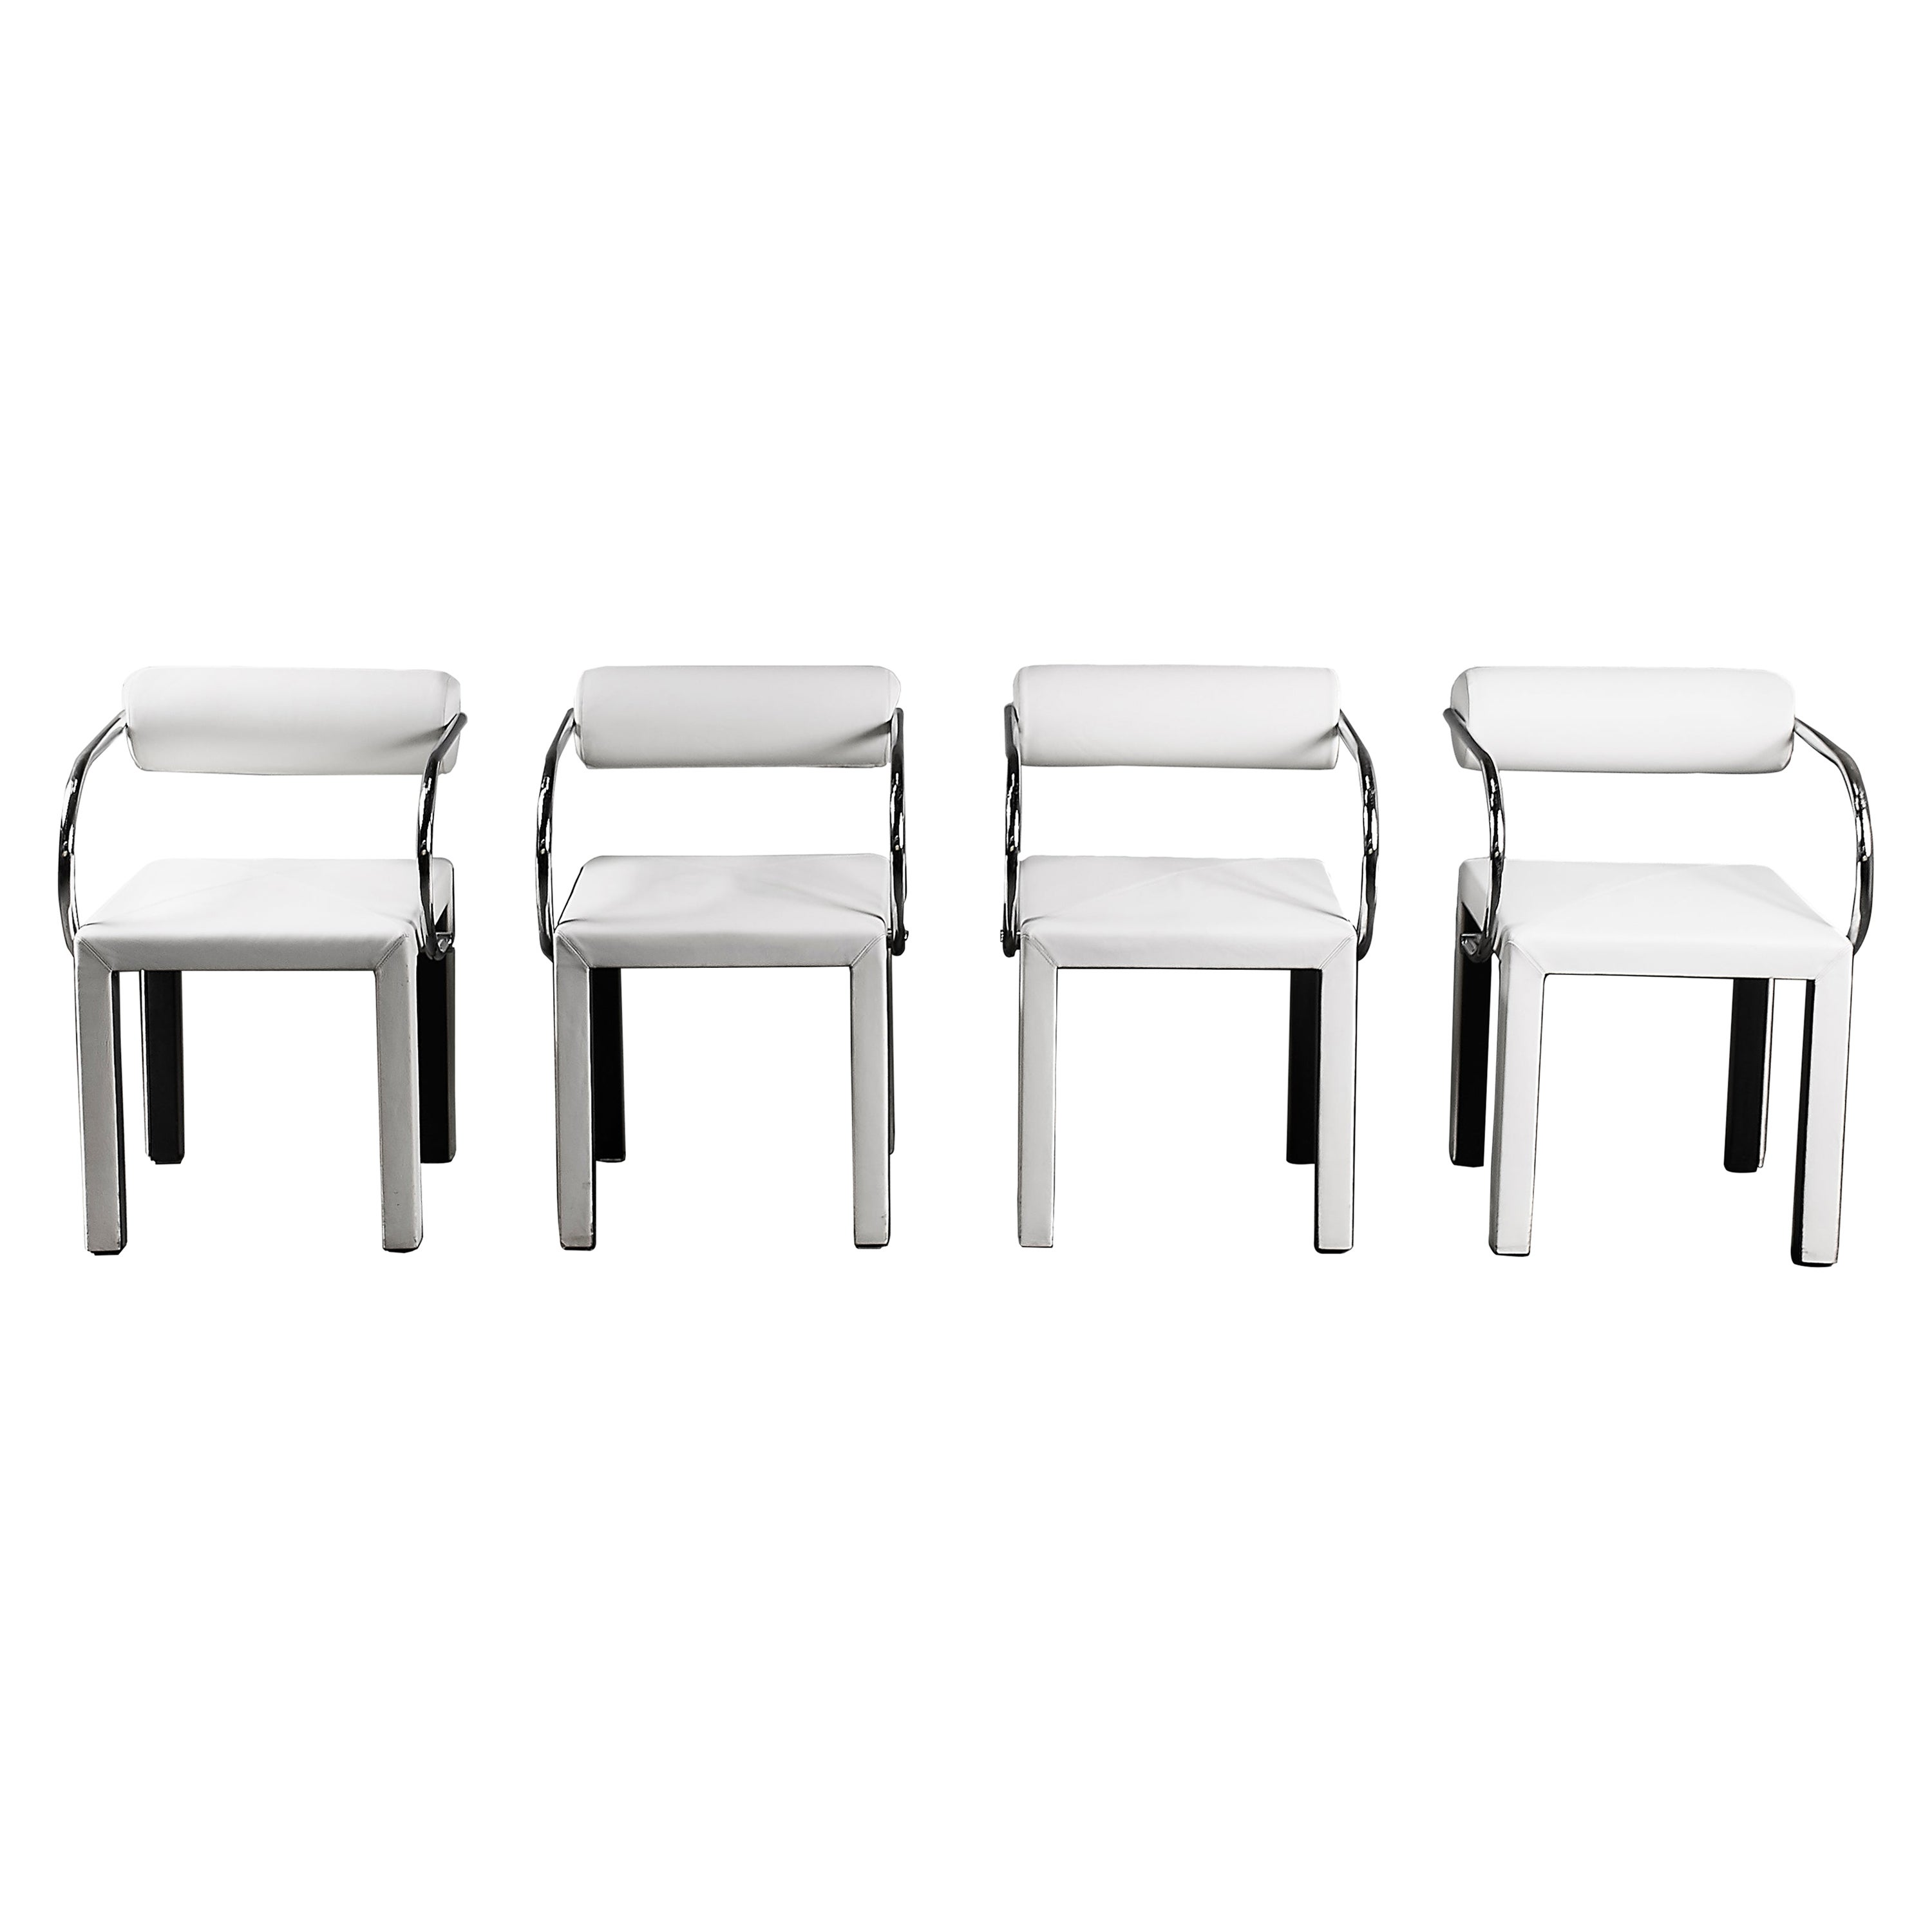 Arcadia Chairs by Paolo Piva for B&B Italia in White Leather